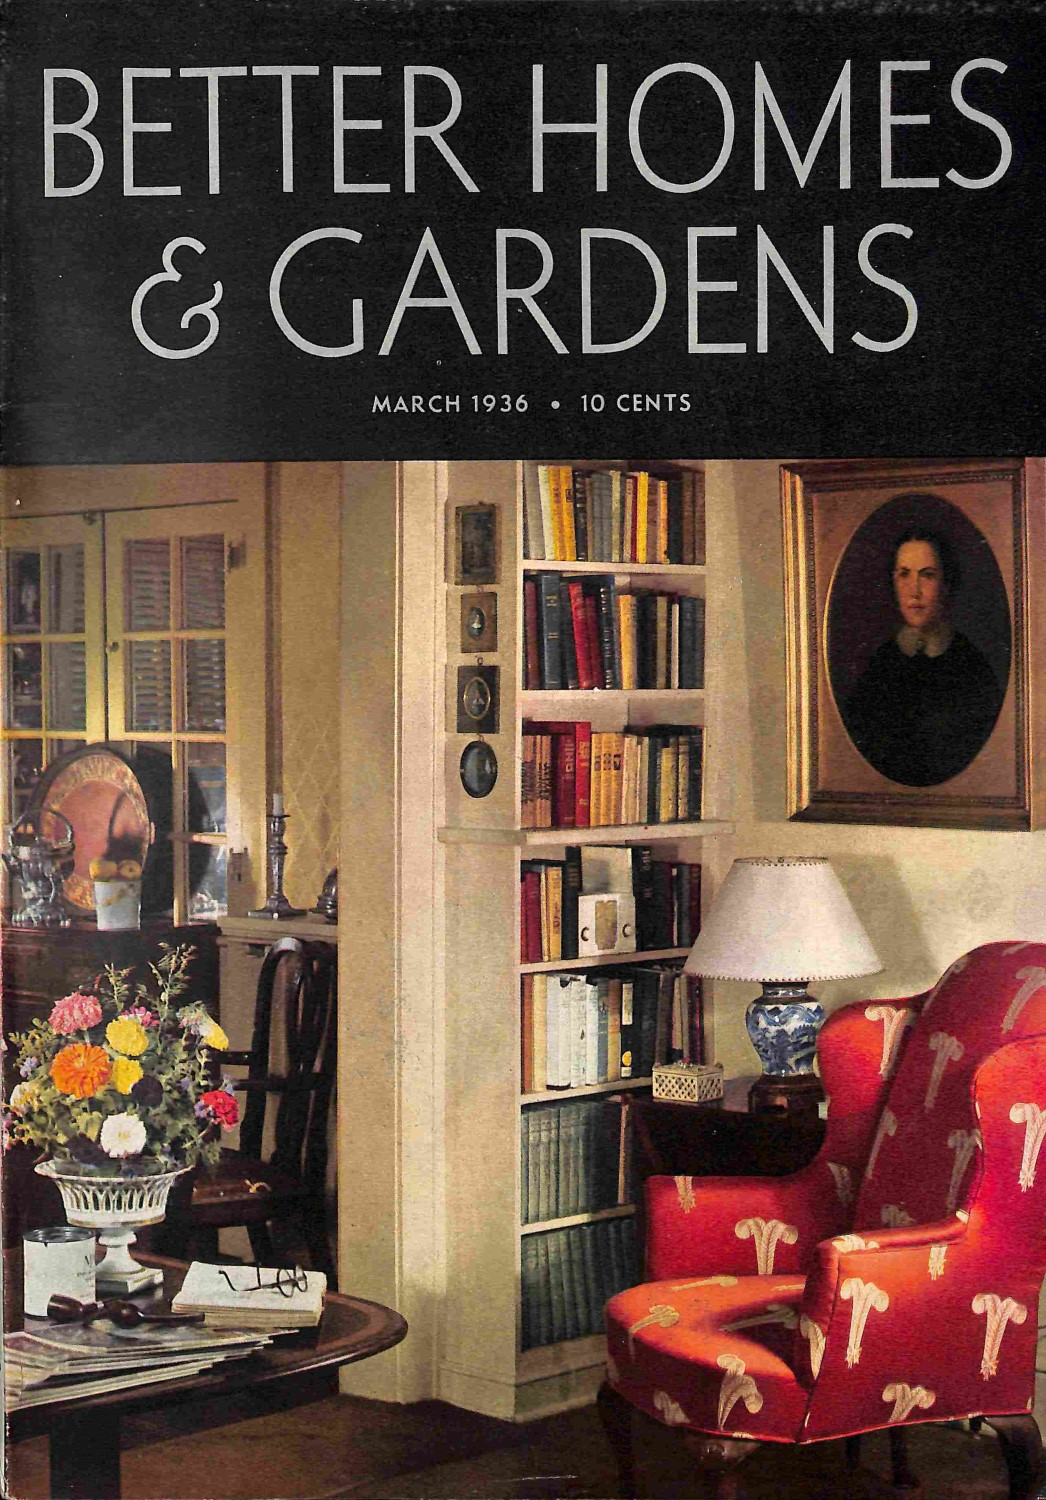 Better Homes and Gardens, March 1936 by meremartcom on Zibbet